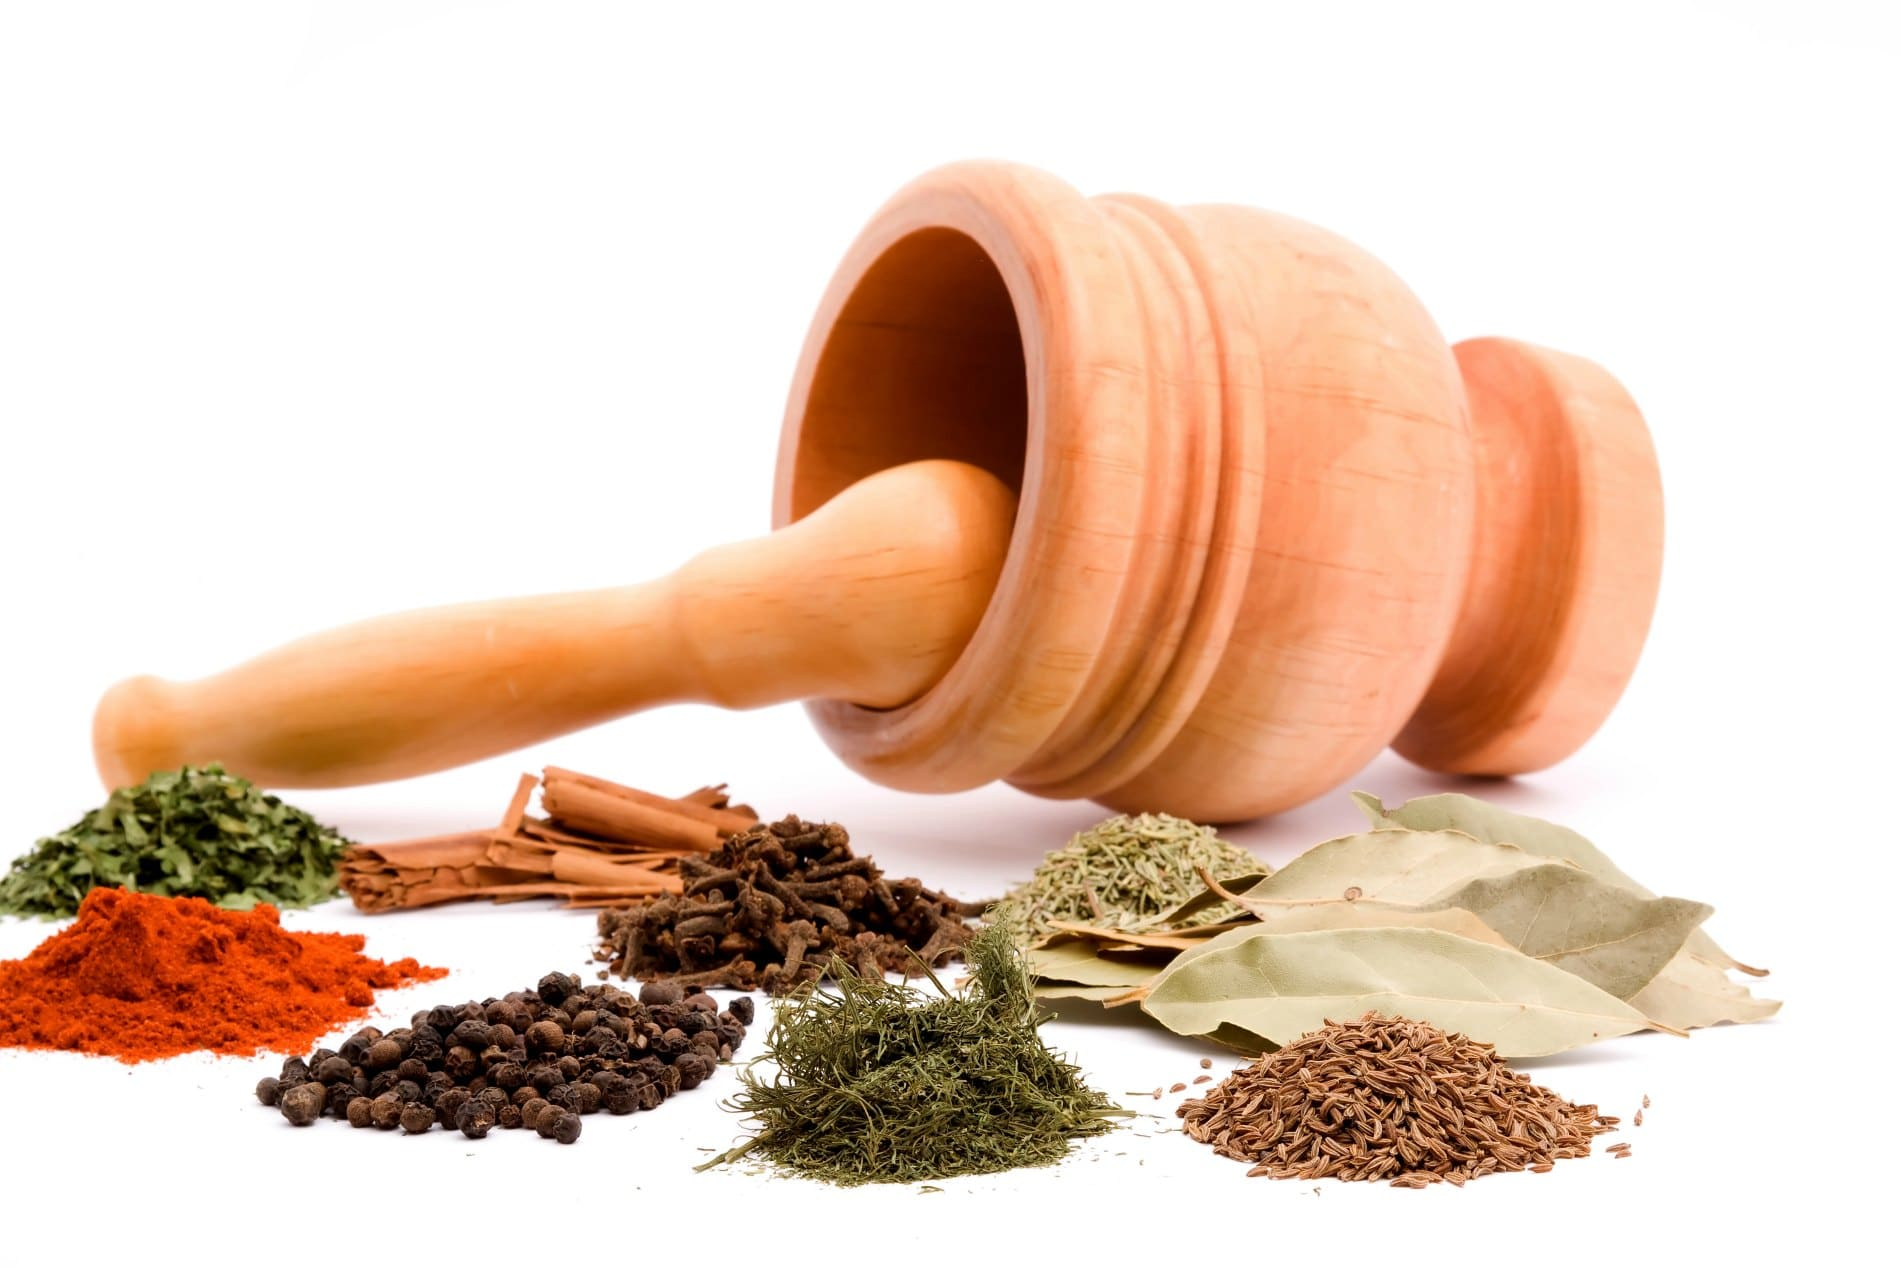 Herbal Treatment and Natural Substances